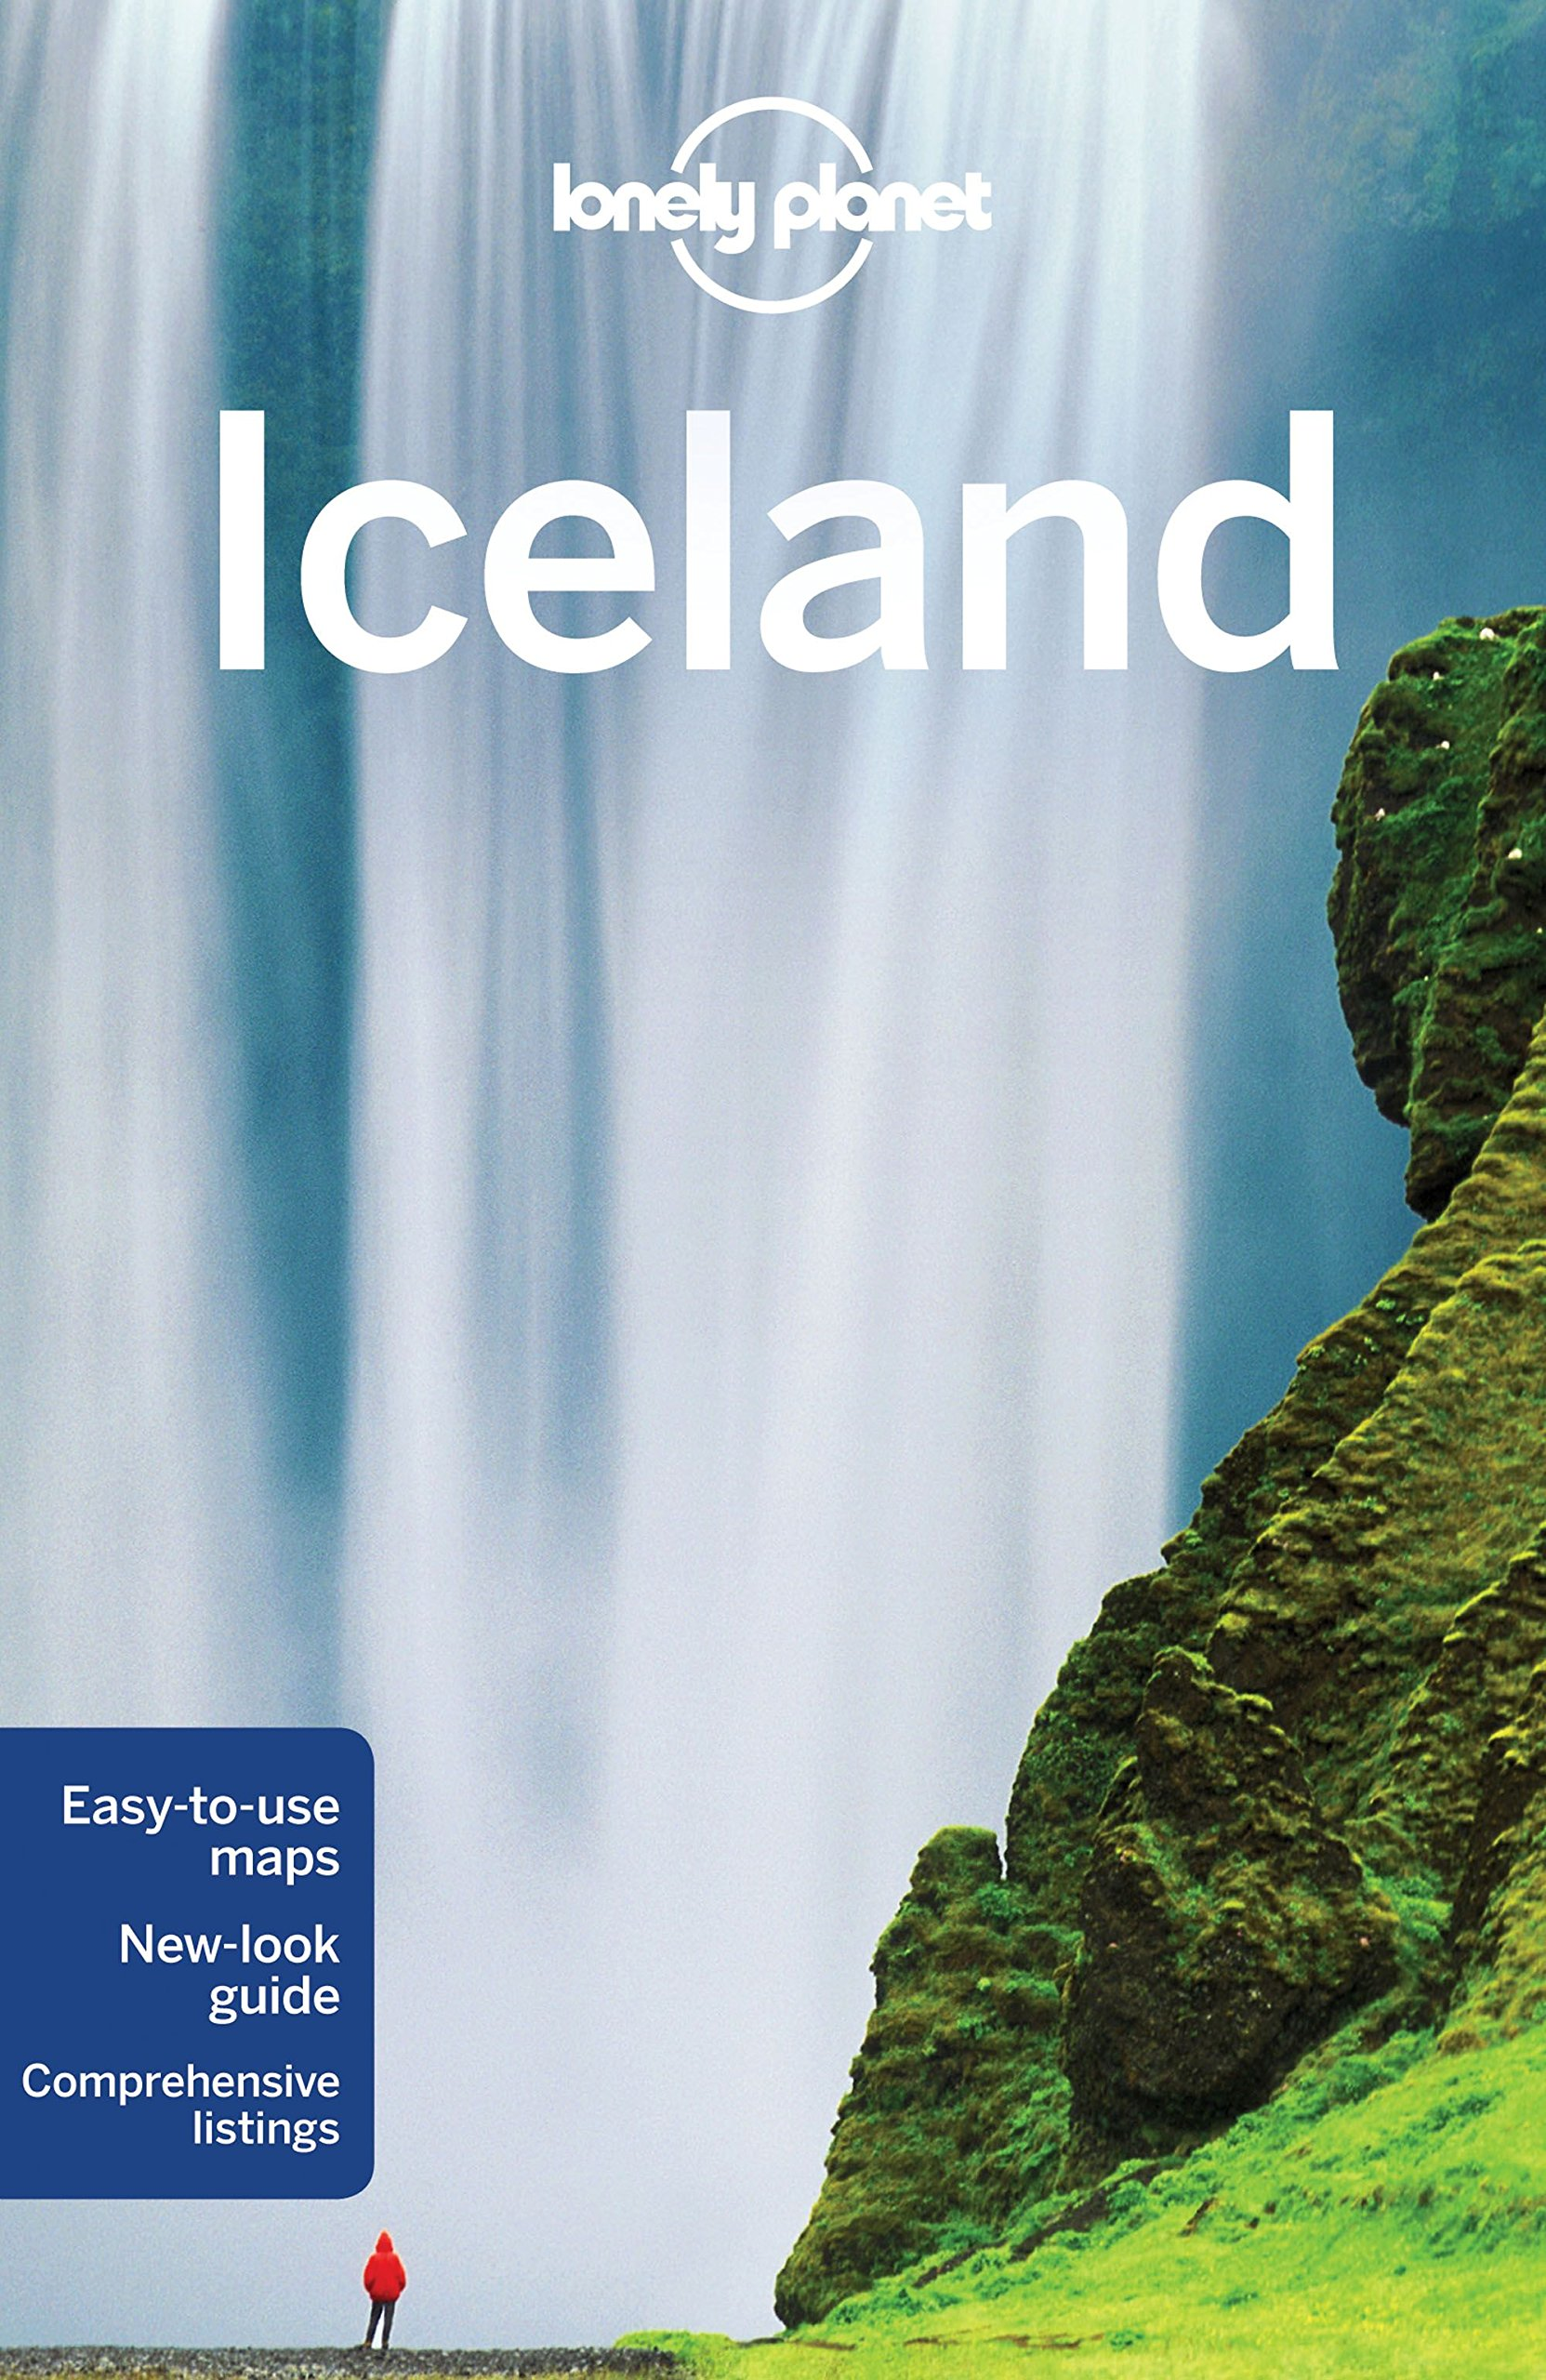 Lonely planet iceland travel guide lonely planet carolyn bain lonely planet iceland travel guide lonely planet carolyn bain alexis averbuck 9781743214756 amazon books gumiabroncs Gallery